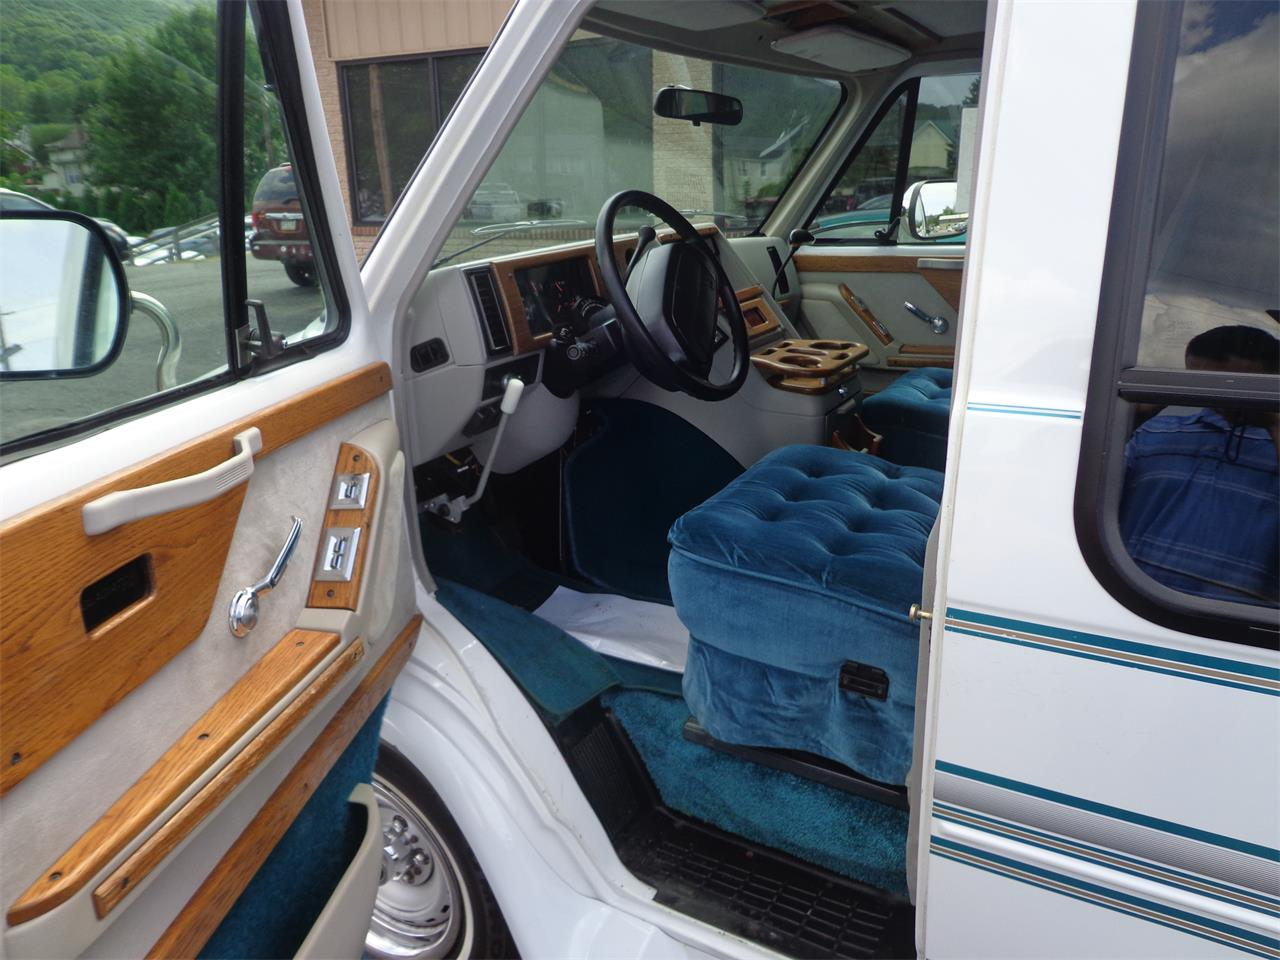 1995 Chevrolet G20 for sale in Mill Hall, PA – photo 7